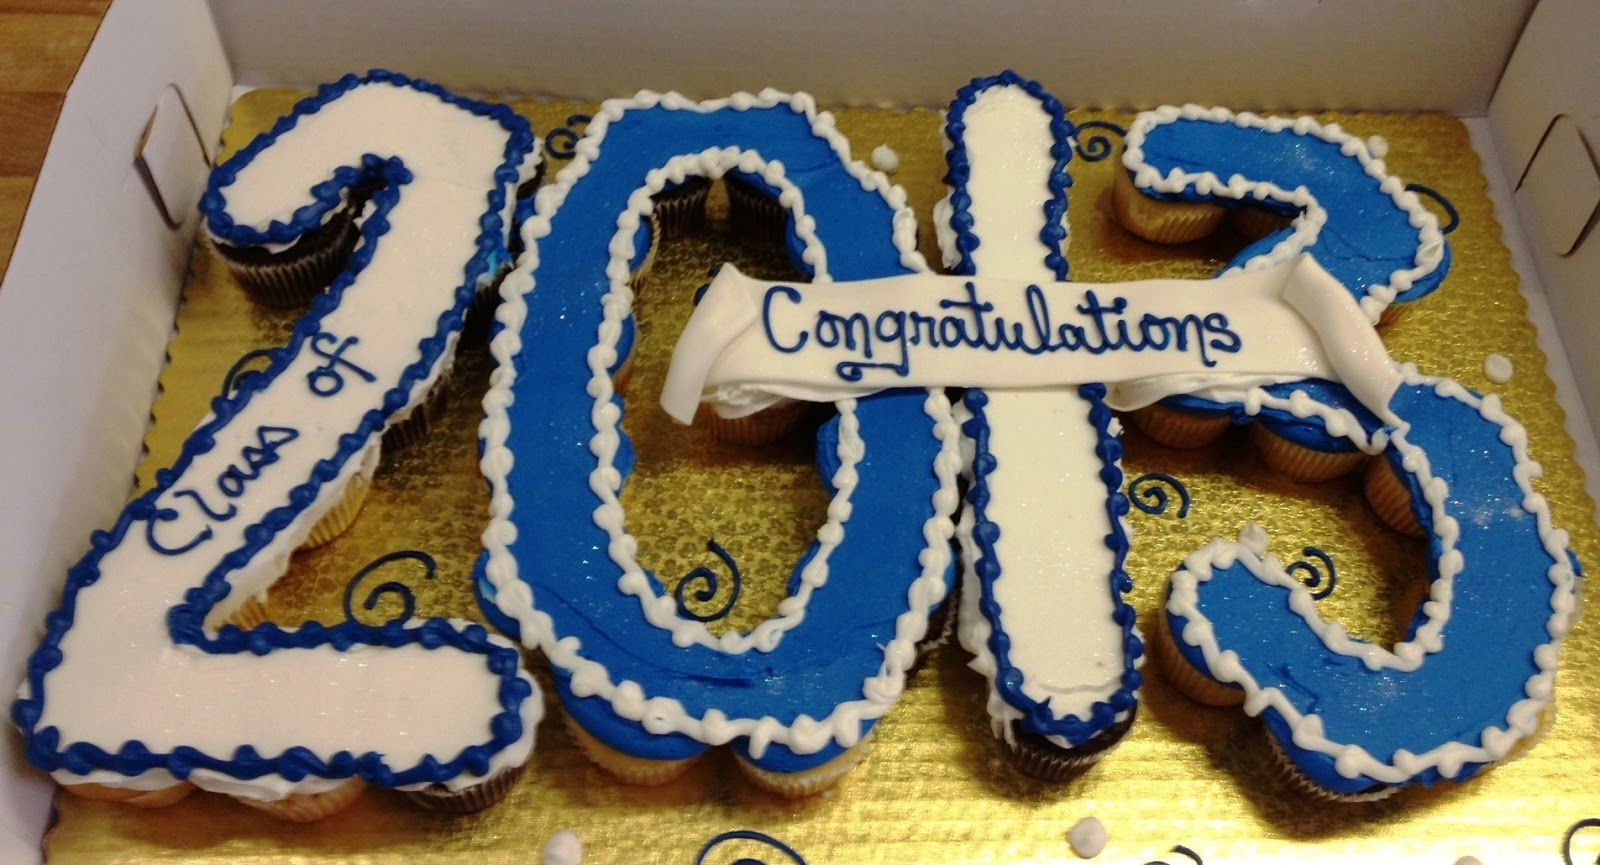 Cupcake Graduation Cake Ideas | Leslie's Cool Cakes from Stan's Northfield Bakery